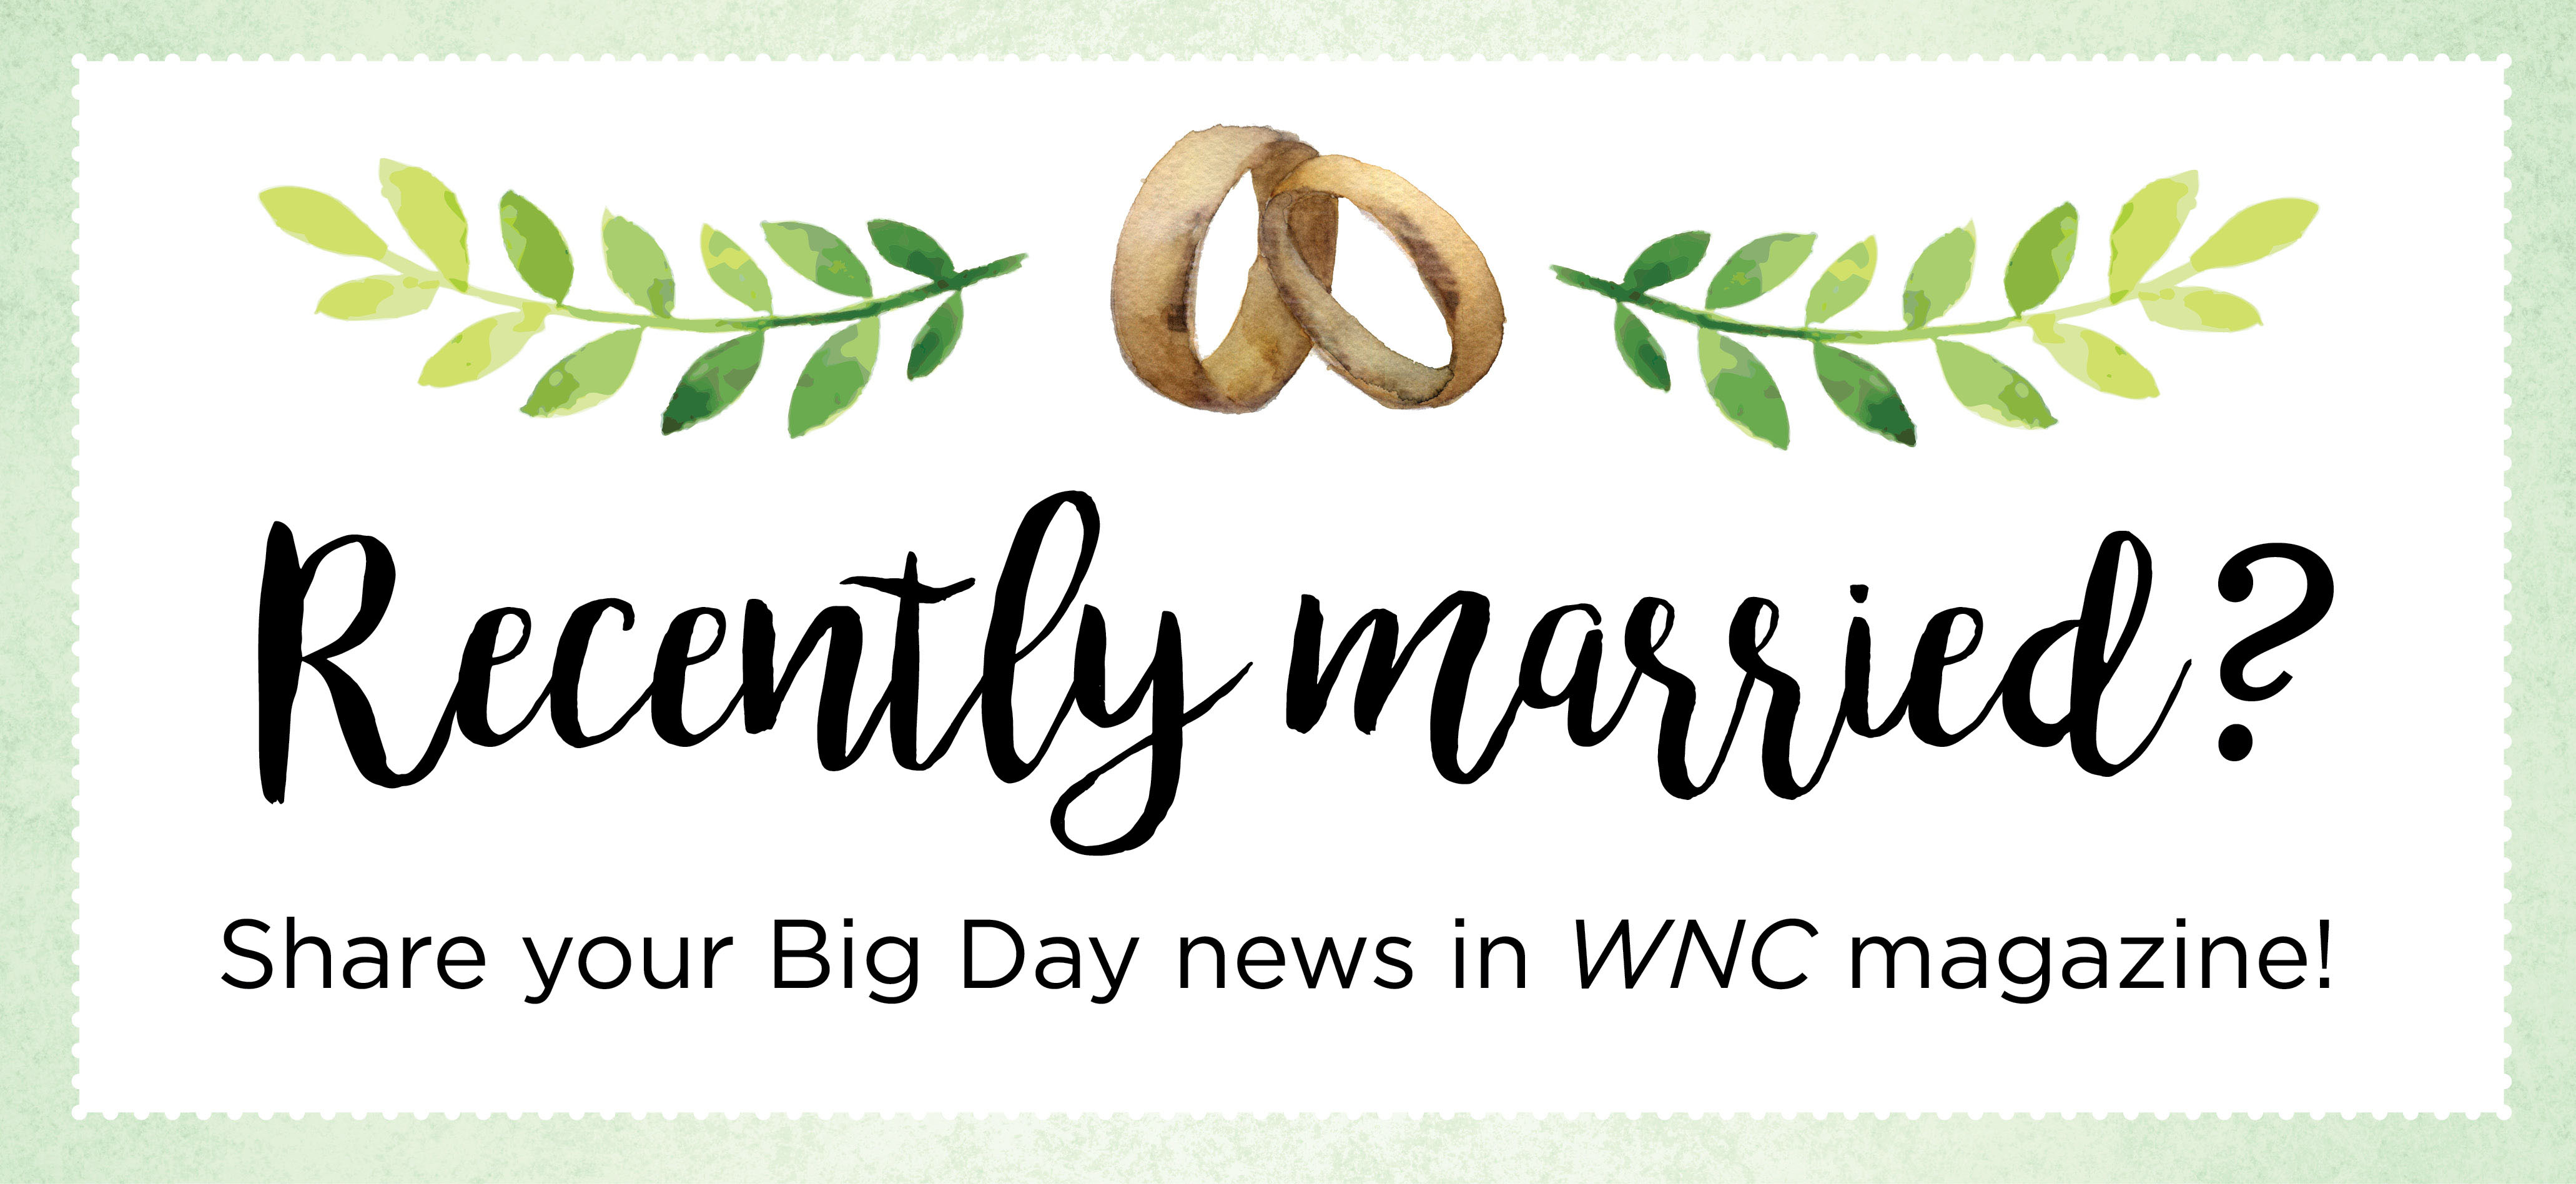 submit your wedding announcement wnc magazine